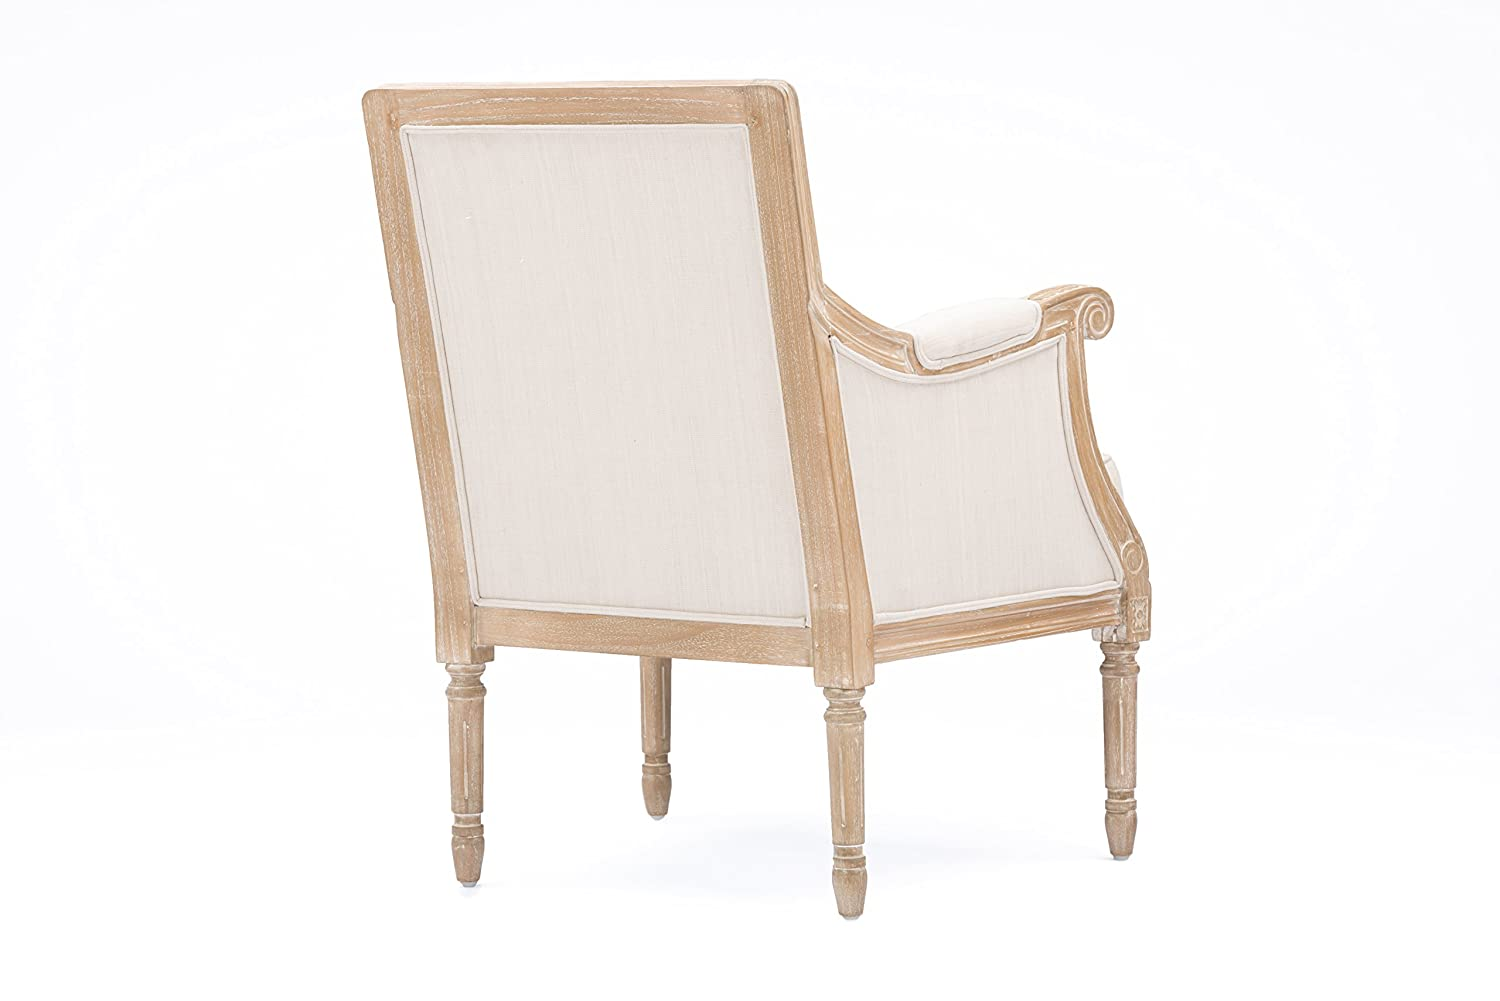 Baxton Studio Chavanon Wood and Linen Traditional French Accent Chair Light Beige Wholesale Interiors ASS500Mi CG4